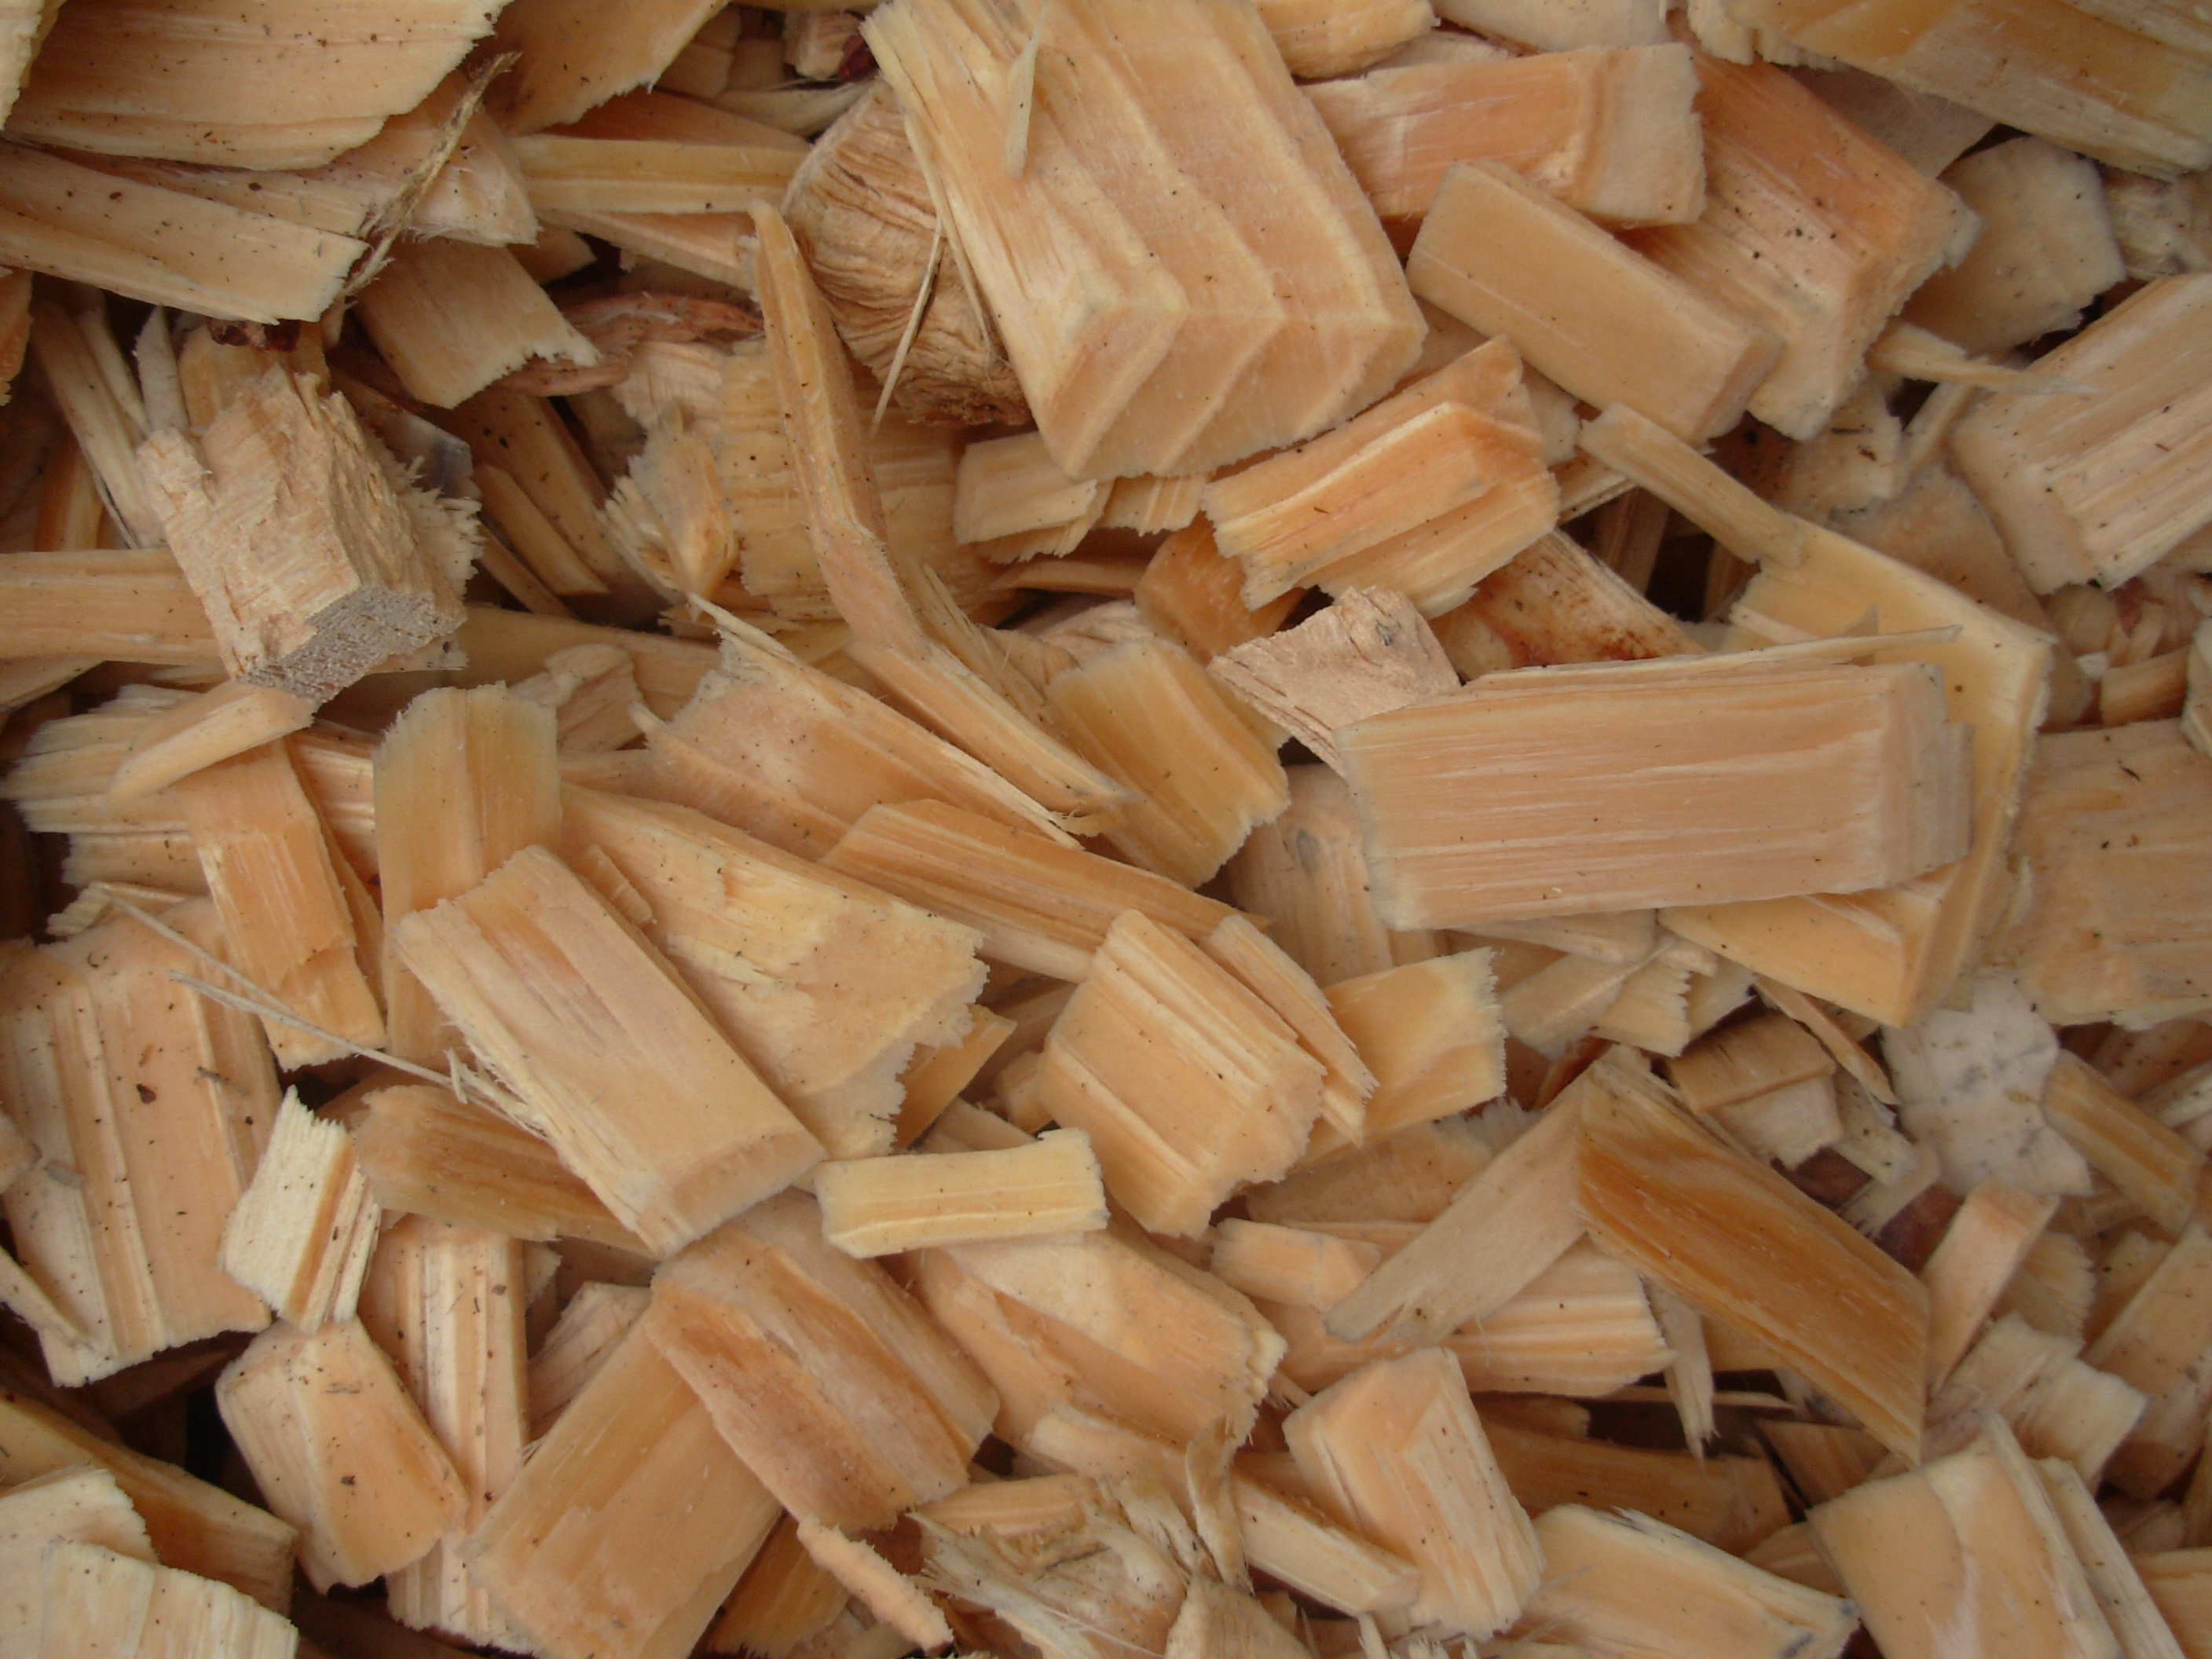 Wood chips from sawmill pine radiata